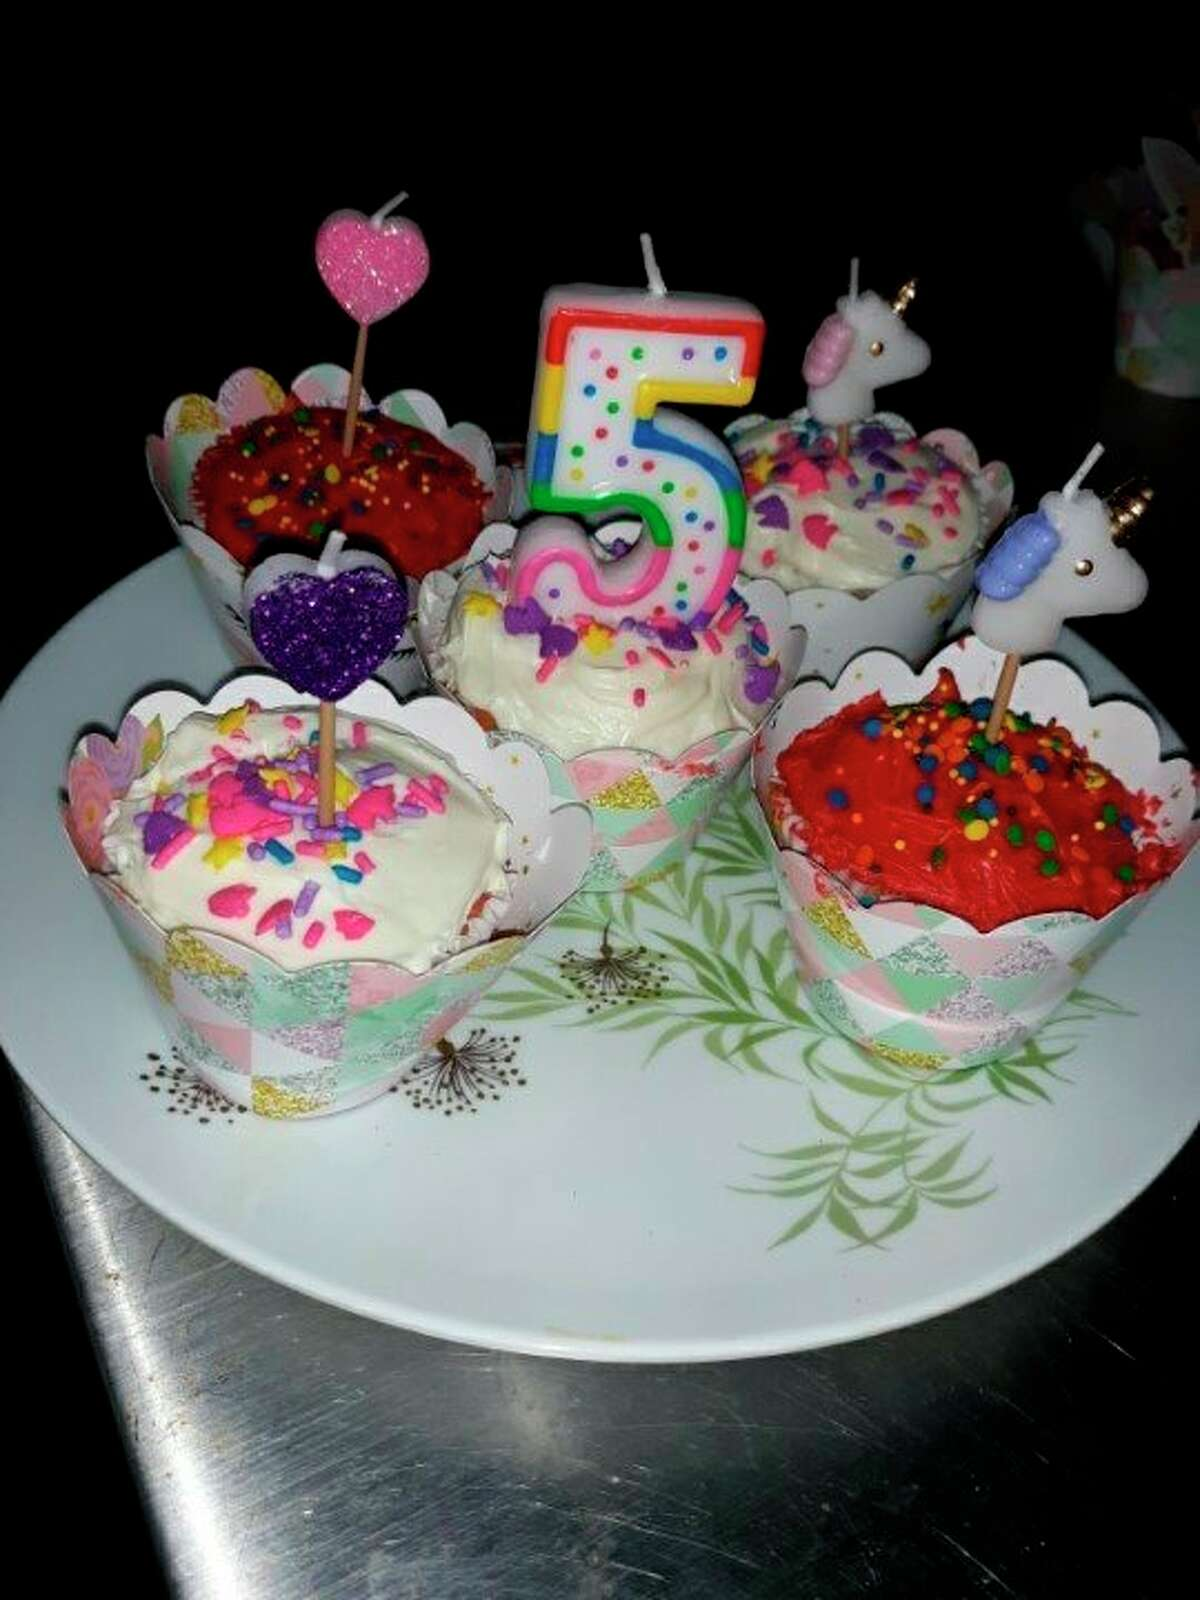 Colorful cupcakes to celebrate Abigail's fifth birthday. (Courtesy photo)